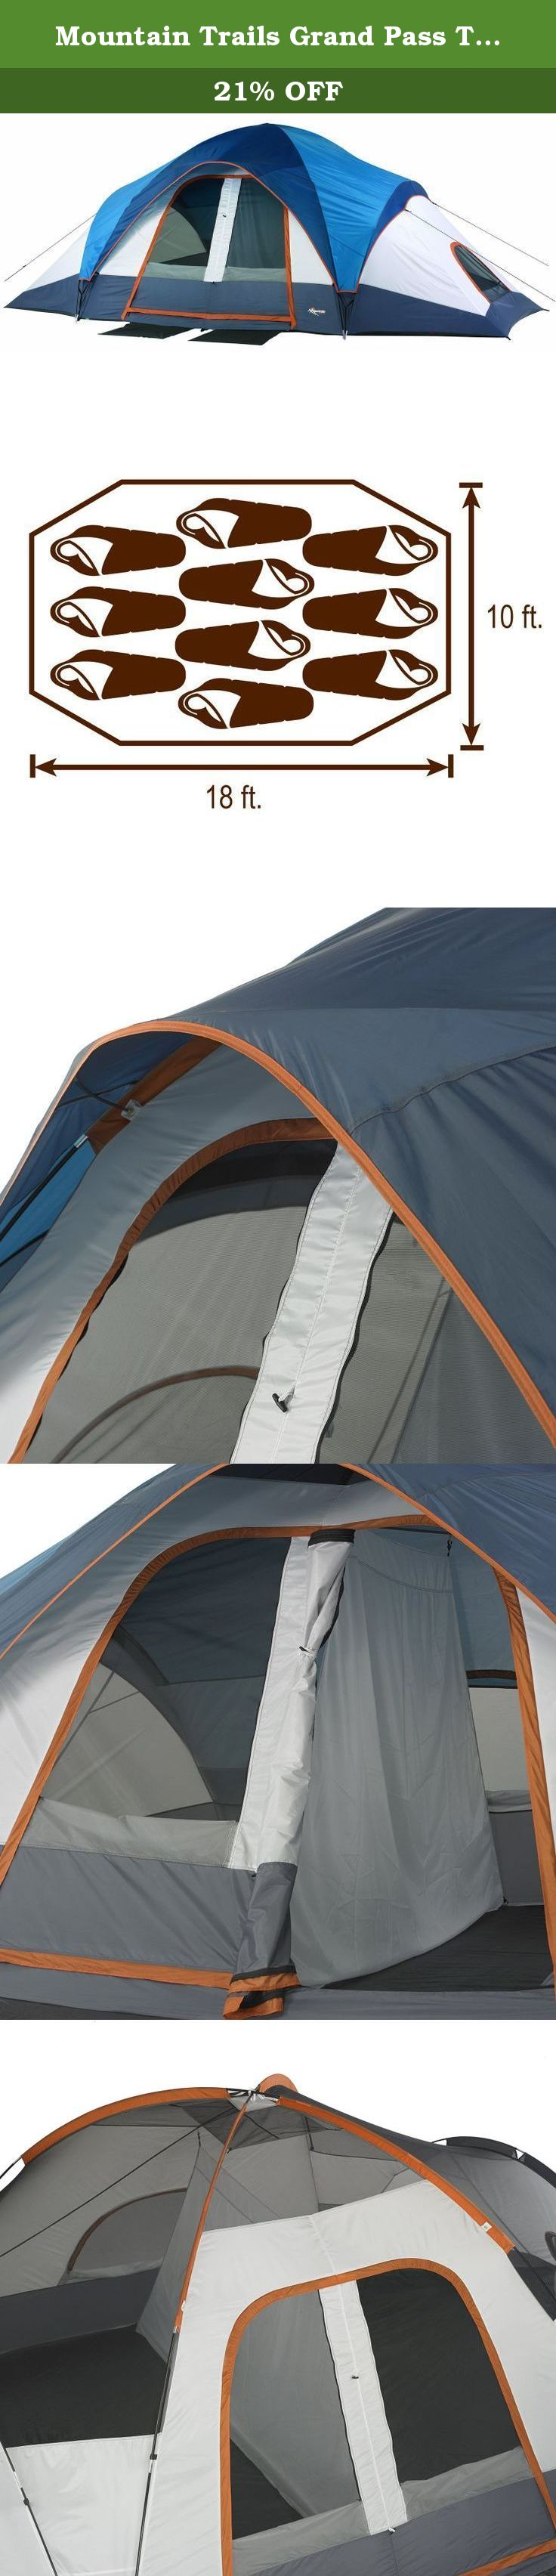 Mountain Trails Grand Pass Tent 10 Person Mountain Trails Grand Pass 2 Room Family Dome Tent Sleeps 9 To 10 People Comfor Family Tent Camping Tent Dome Tent